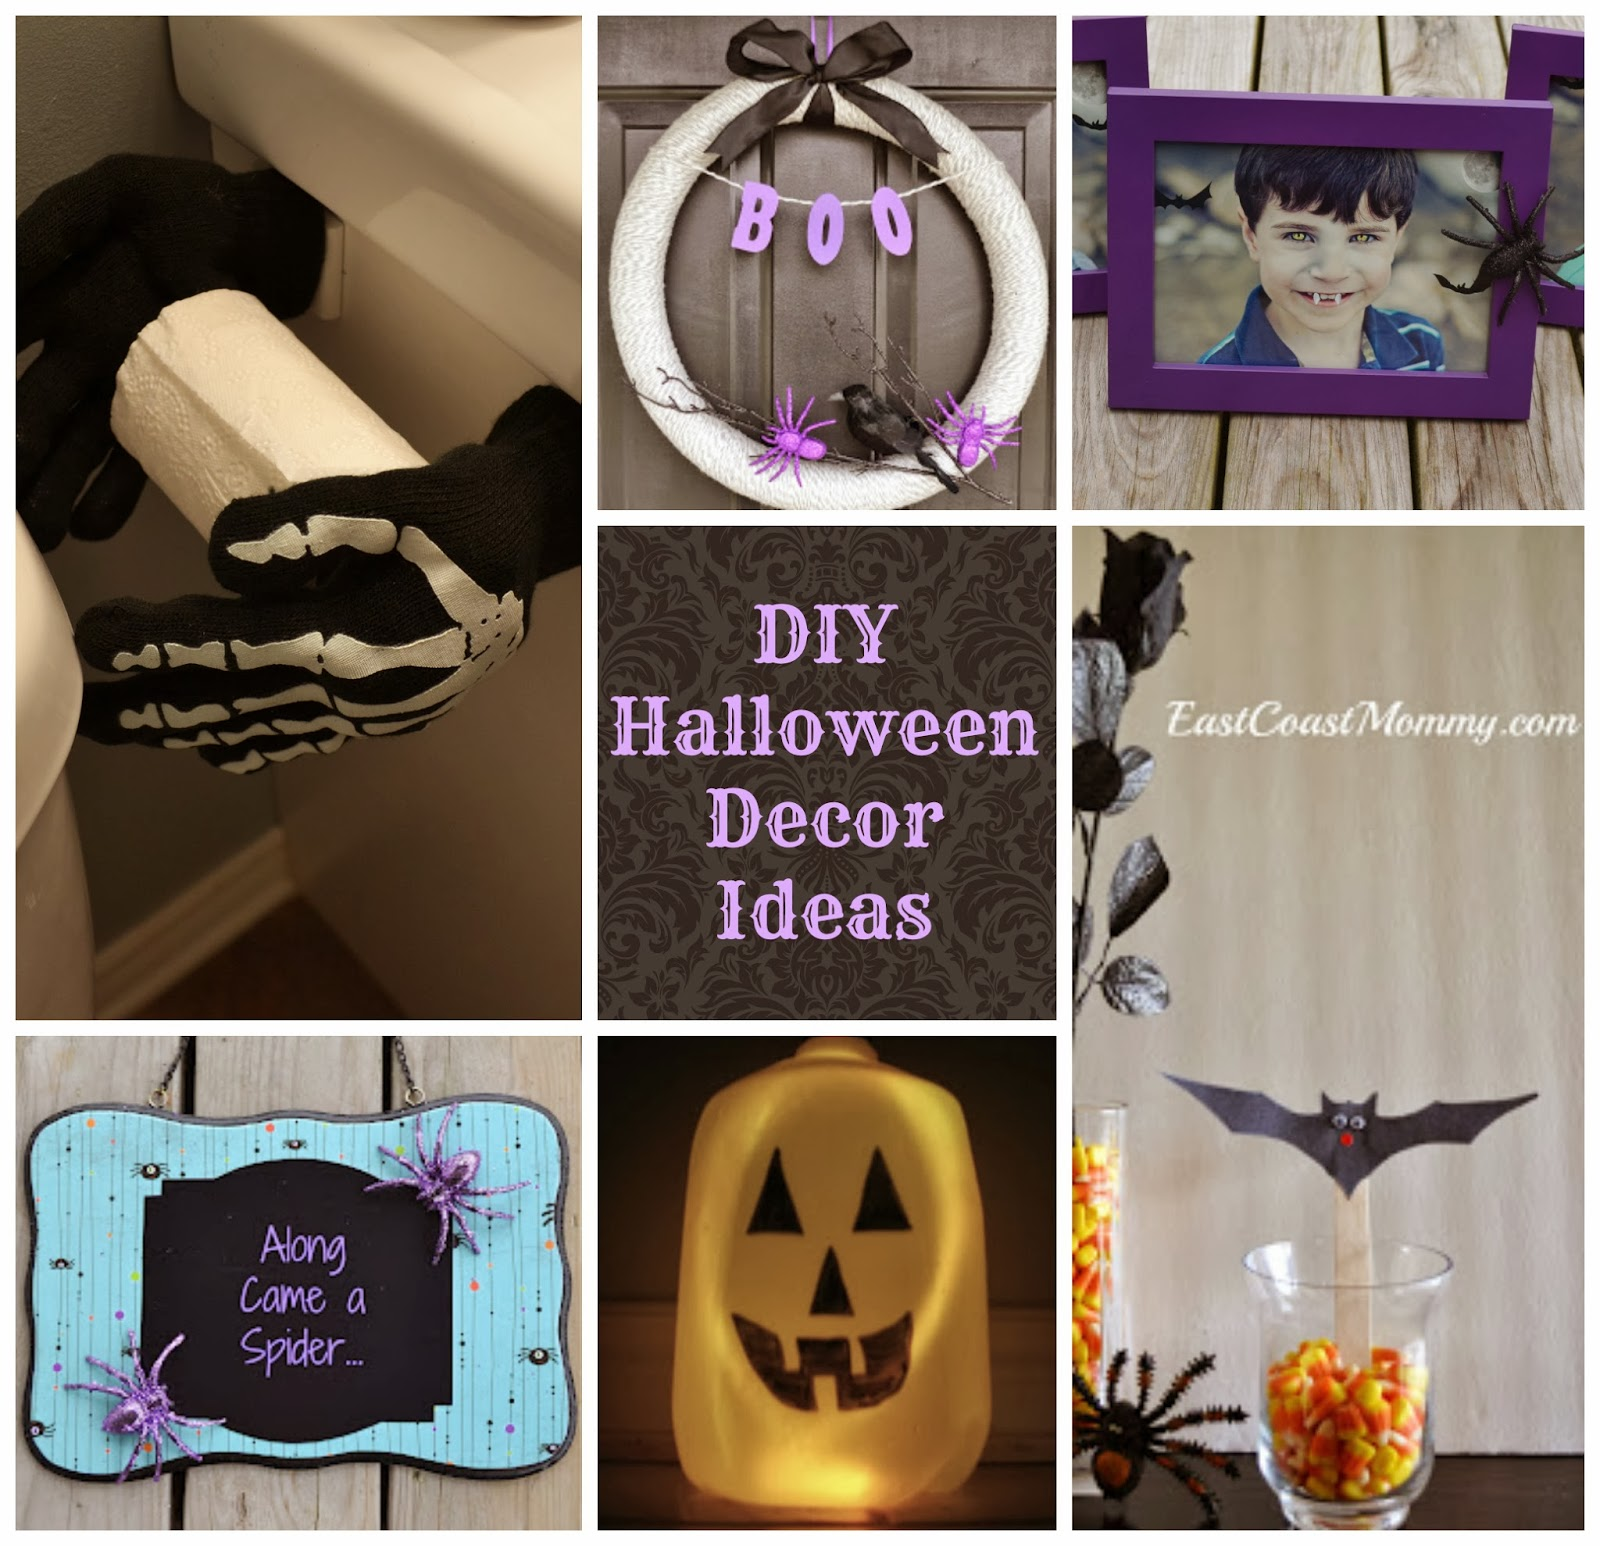 East coast mommy 7 fantastic diy halloween decor ideas - Interesting diy halloween wreaths home ...